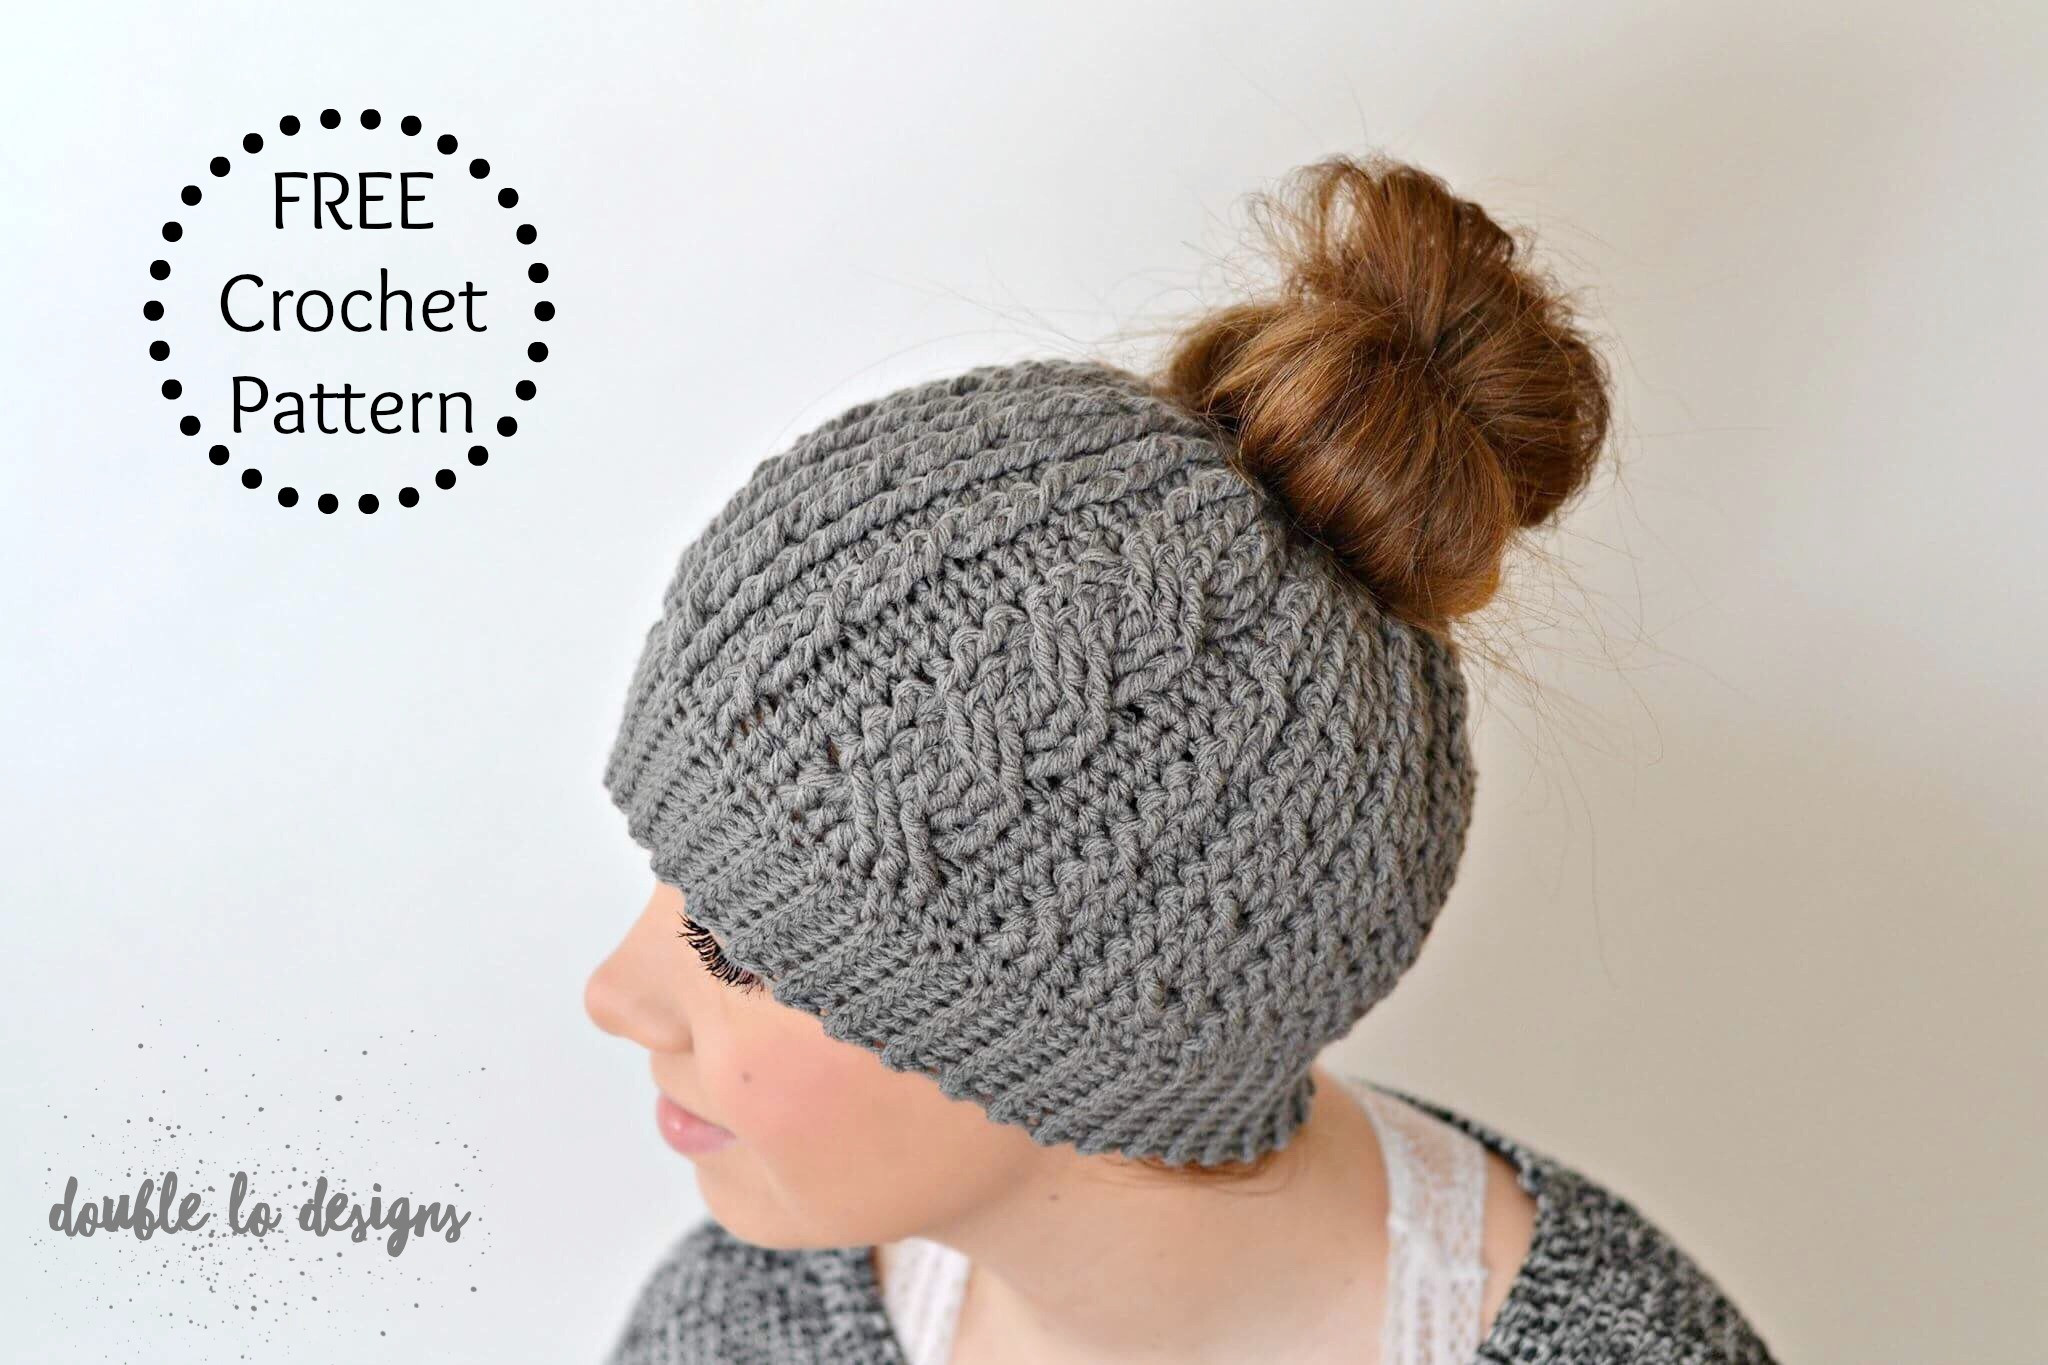 Messy Bun Beanie Hat Inspirational Free Crochet Pattern Crochet Cabled Messy Bun Hat Adult Of Brilliant 47 Photos Messy Bun Beanie Hat